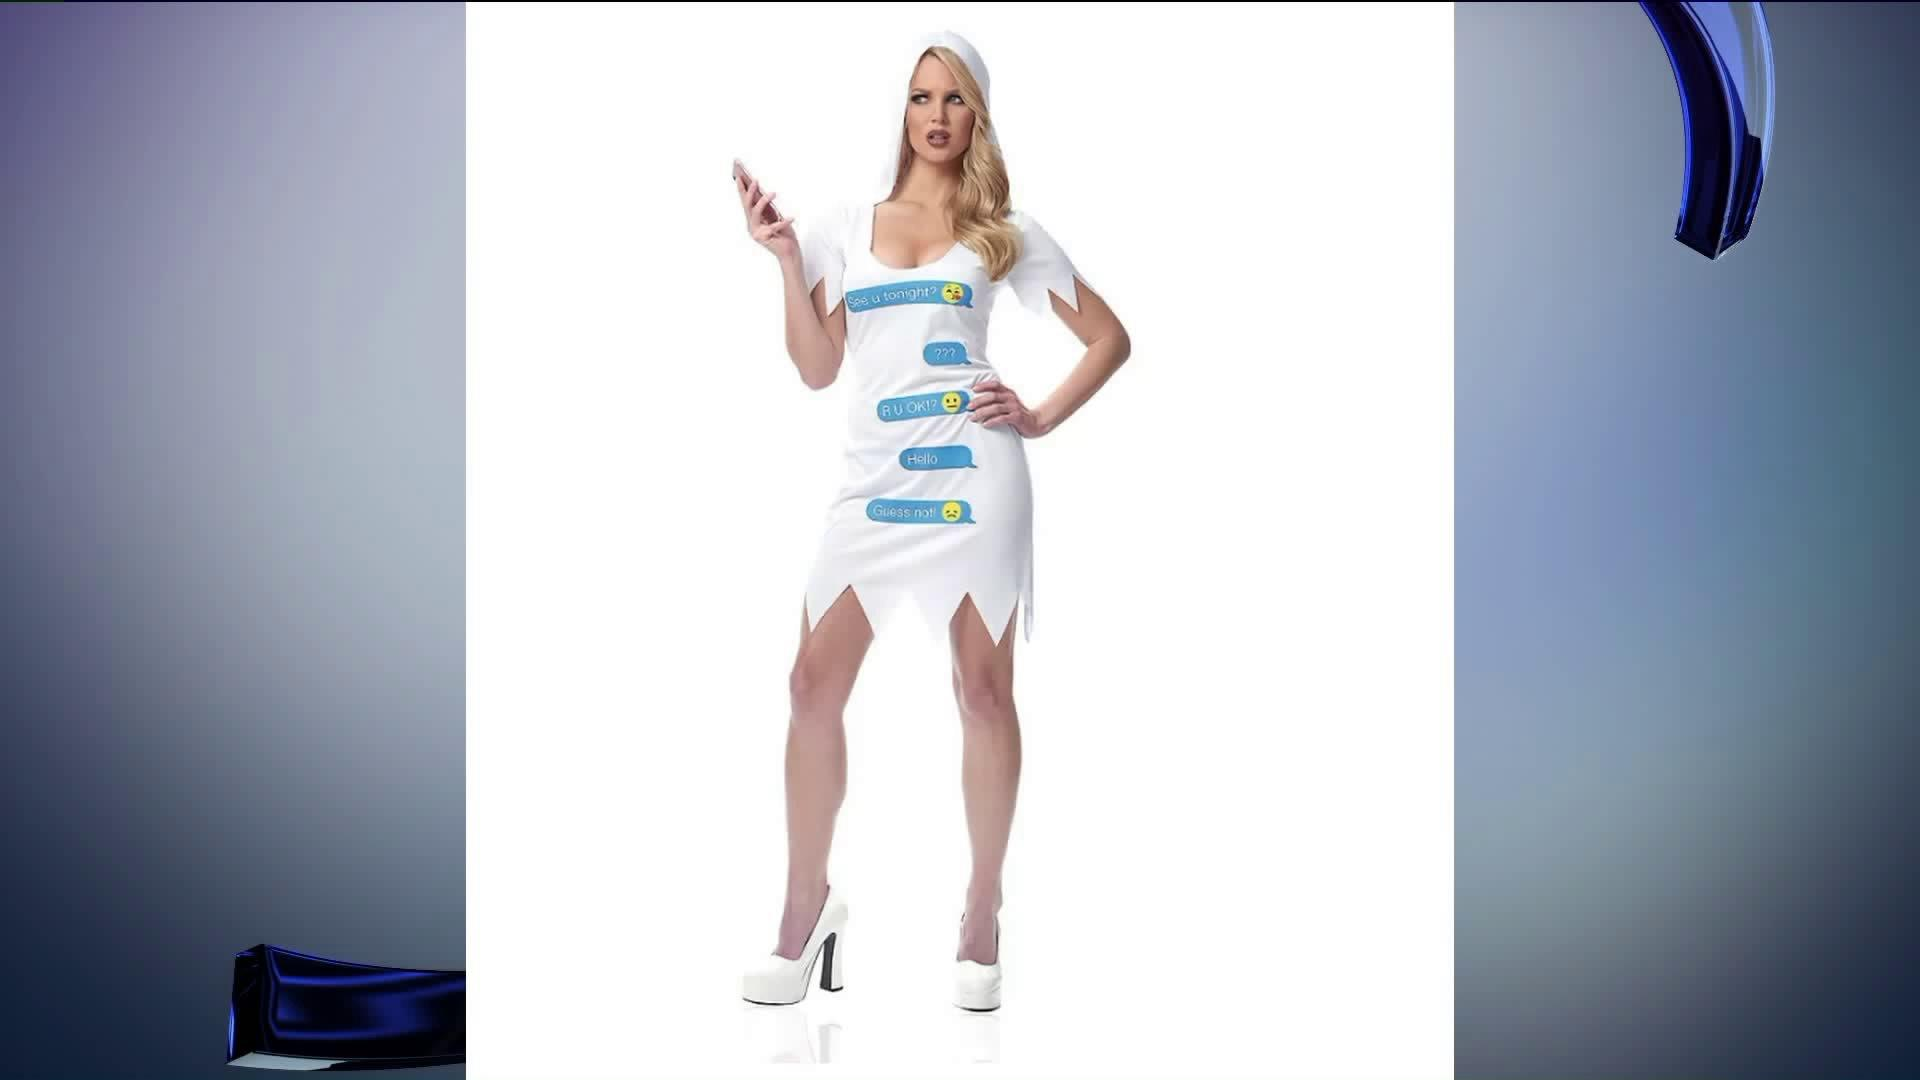 Weird, Odd and Bizarre News - Get 'Ghosted' With a New Halloween Costume